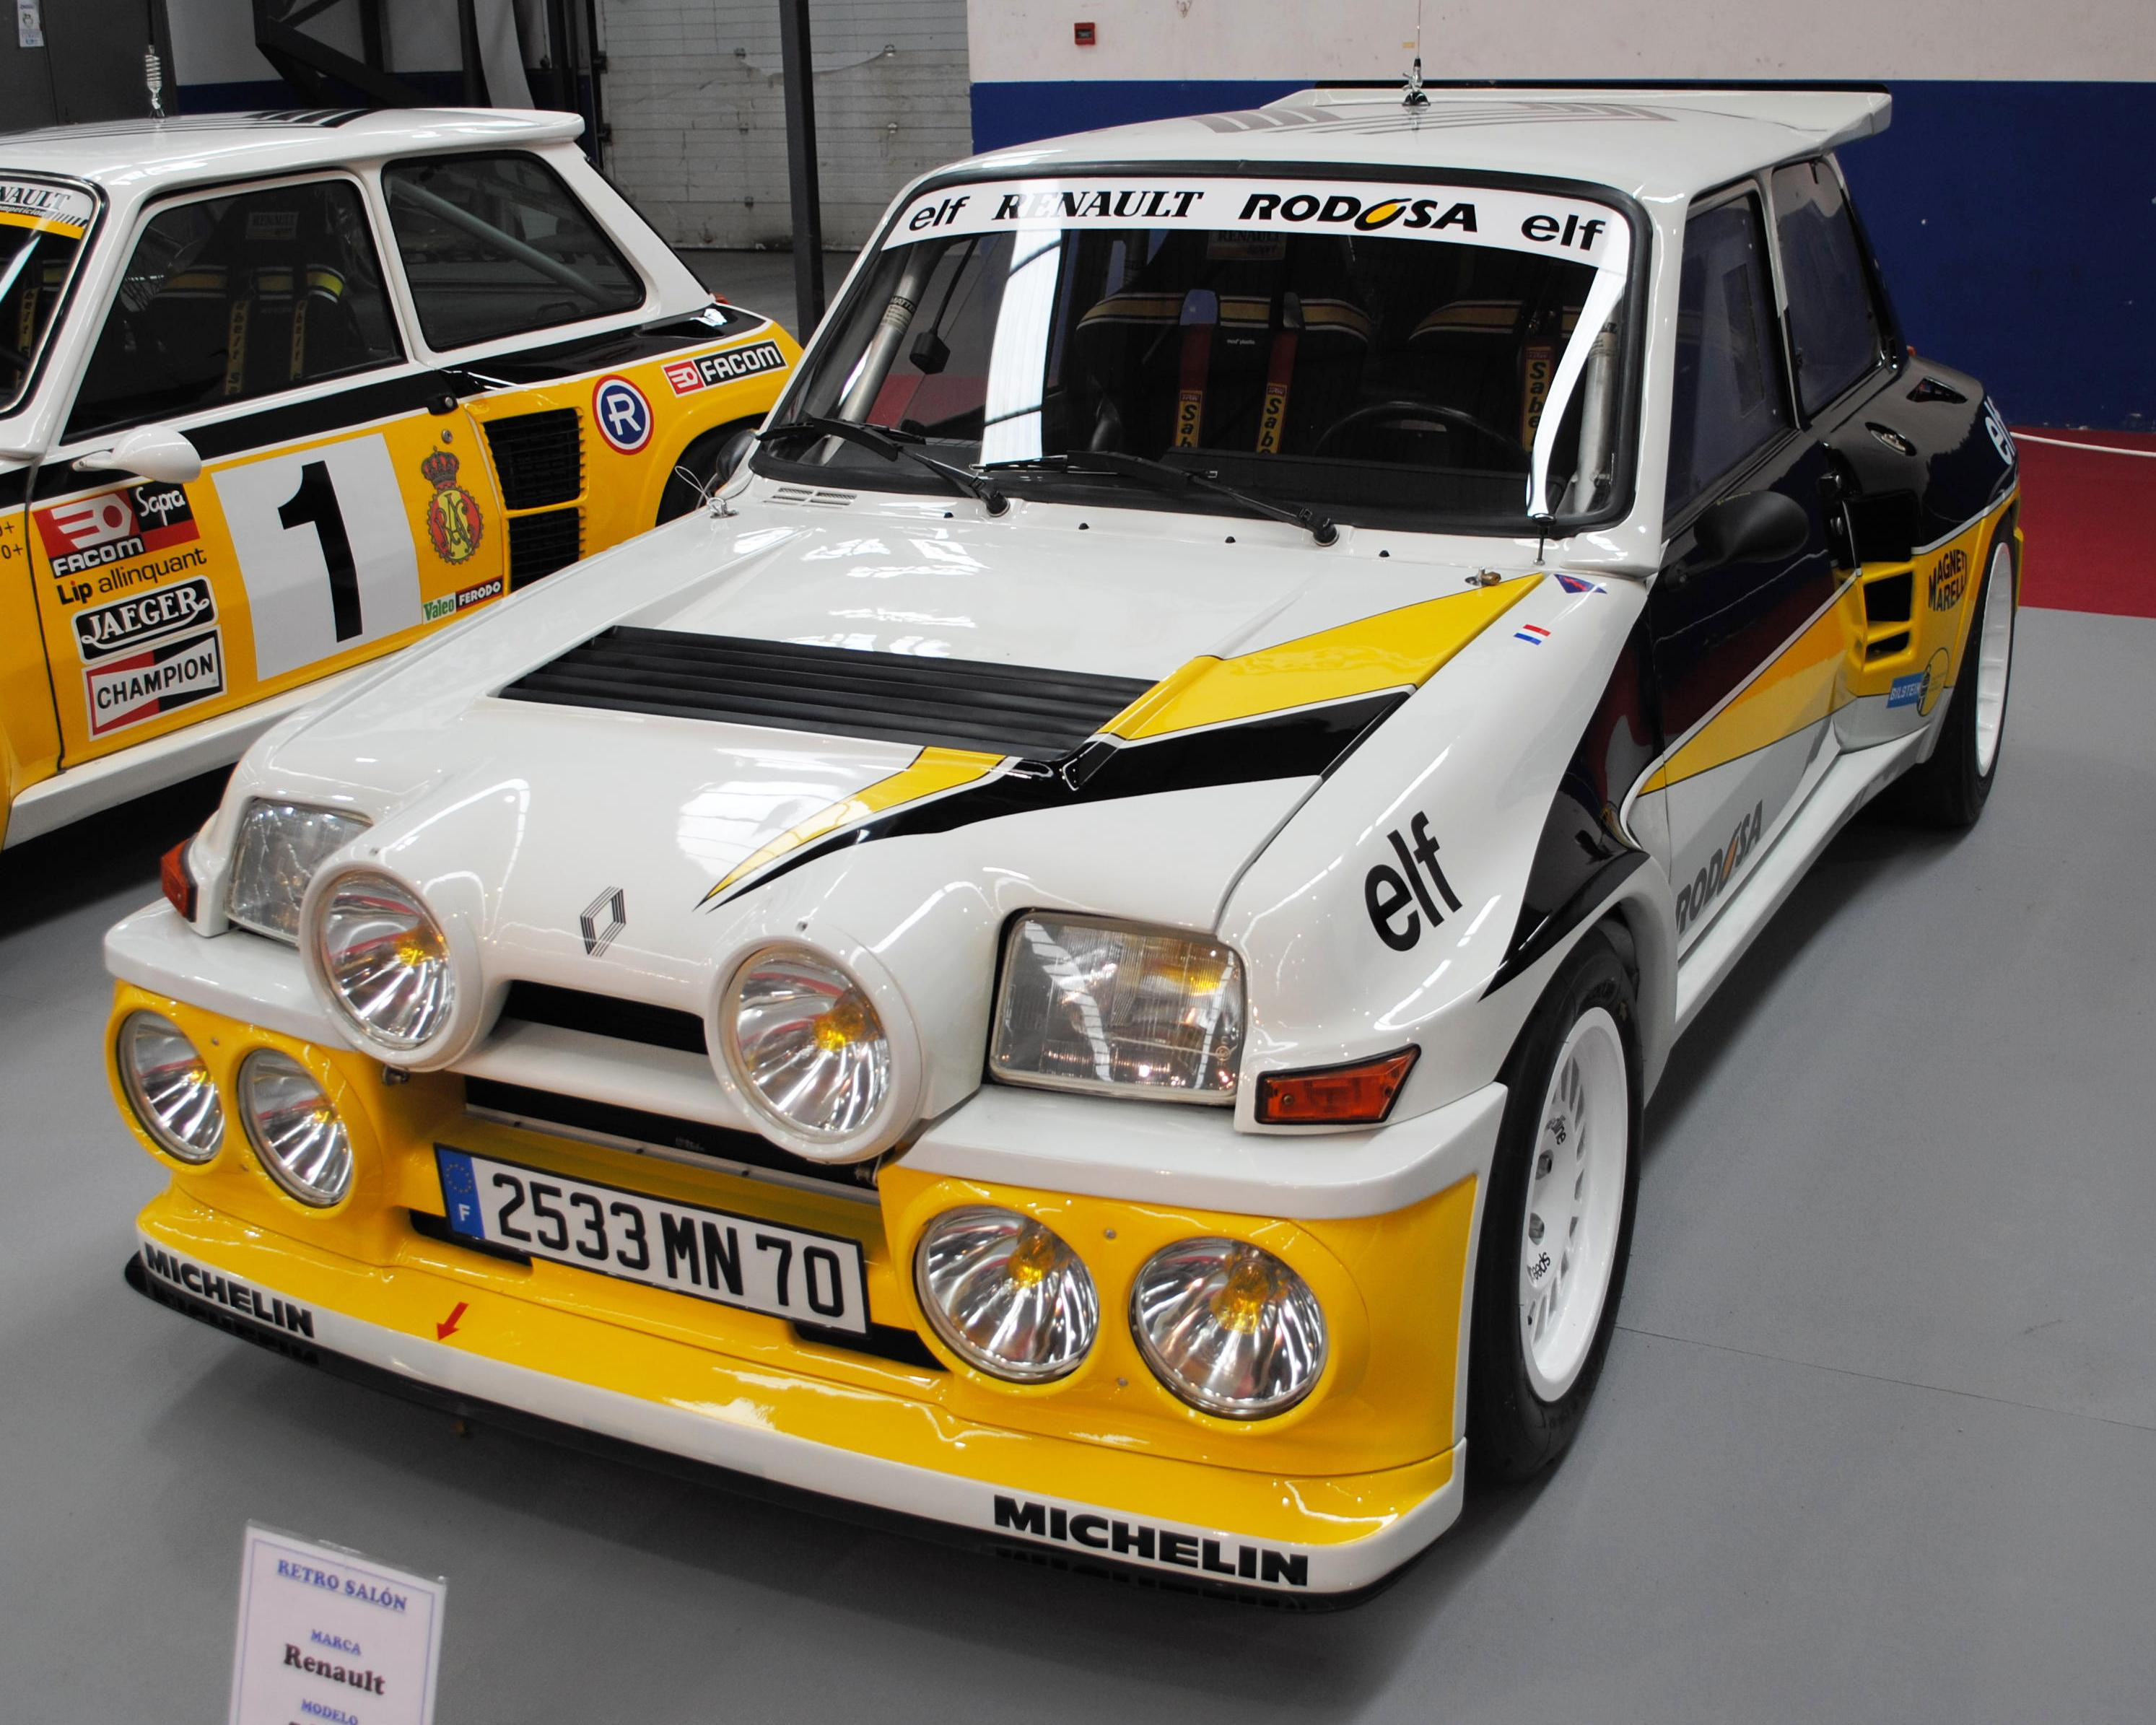 file renault 5 maxi turbo 1984 ifevi 2014 jpg wikimedia commons. Black Bedroom Furniture Sets. Home Design Ideas